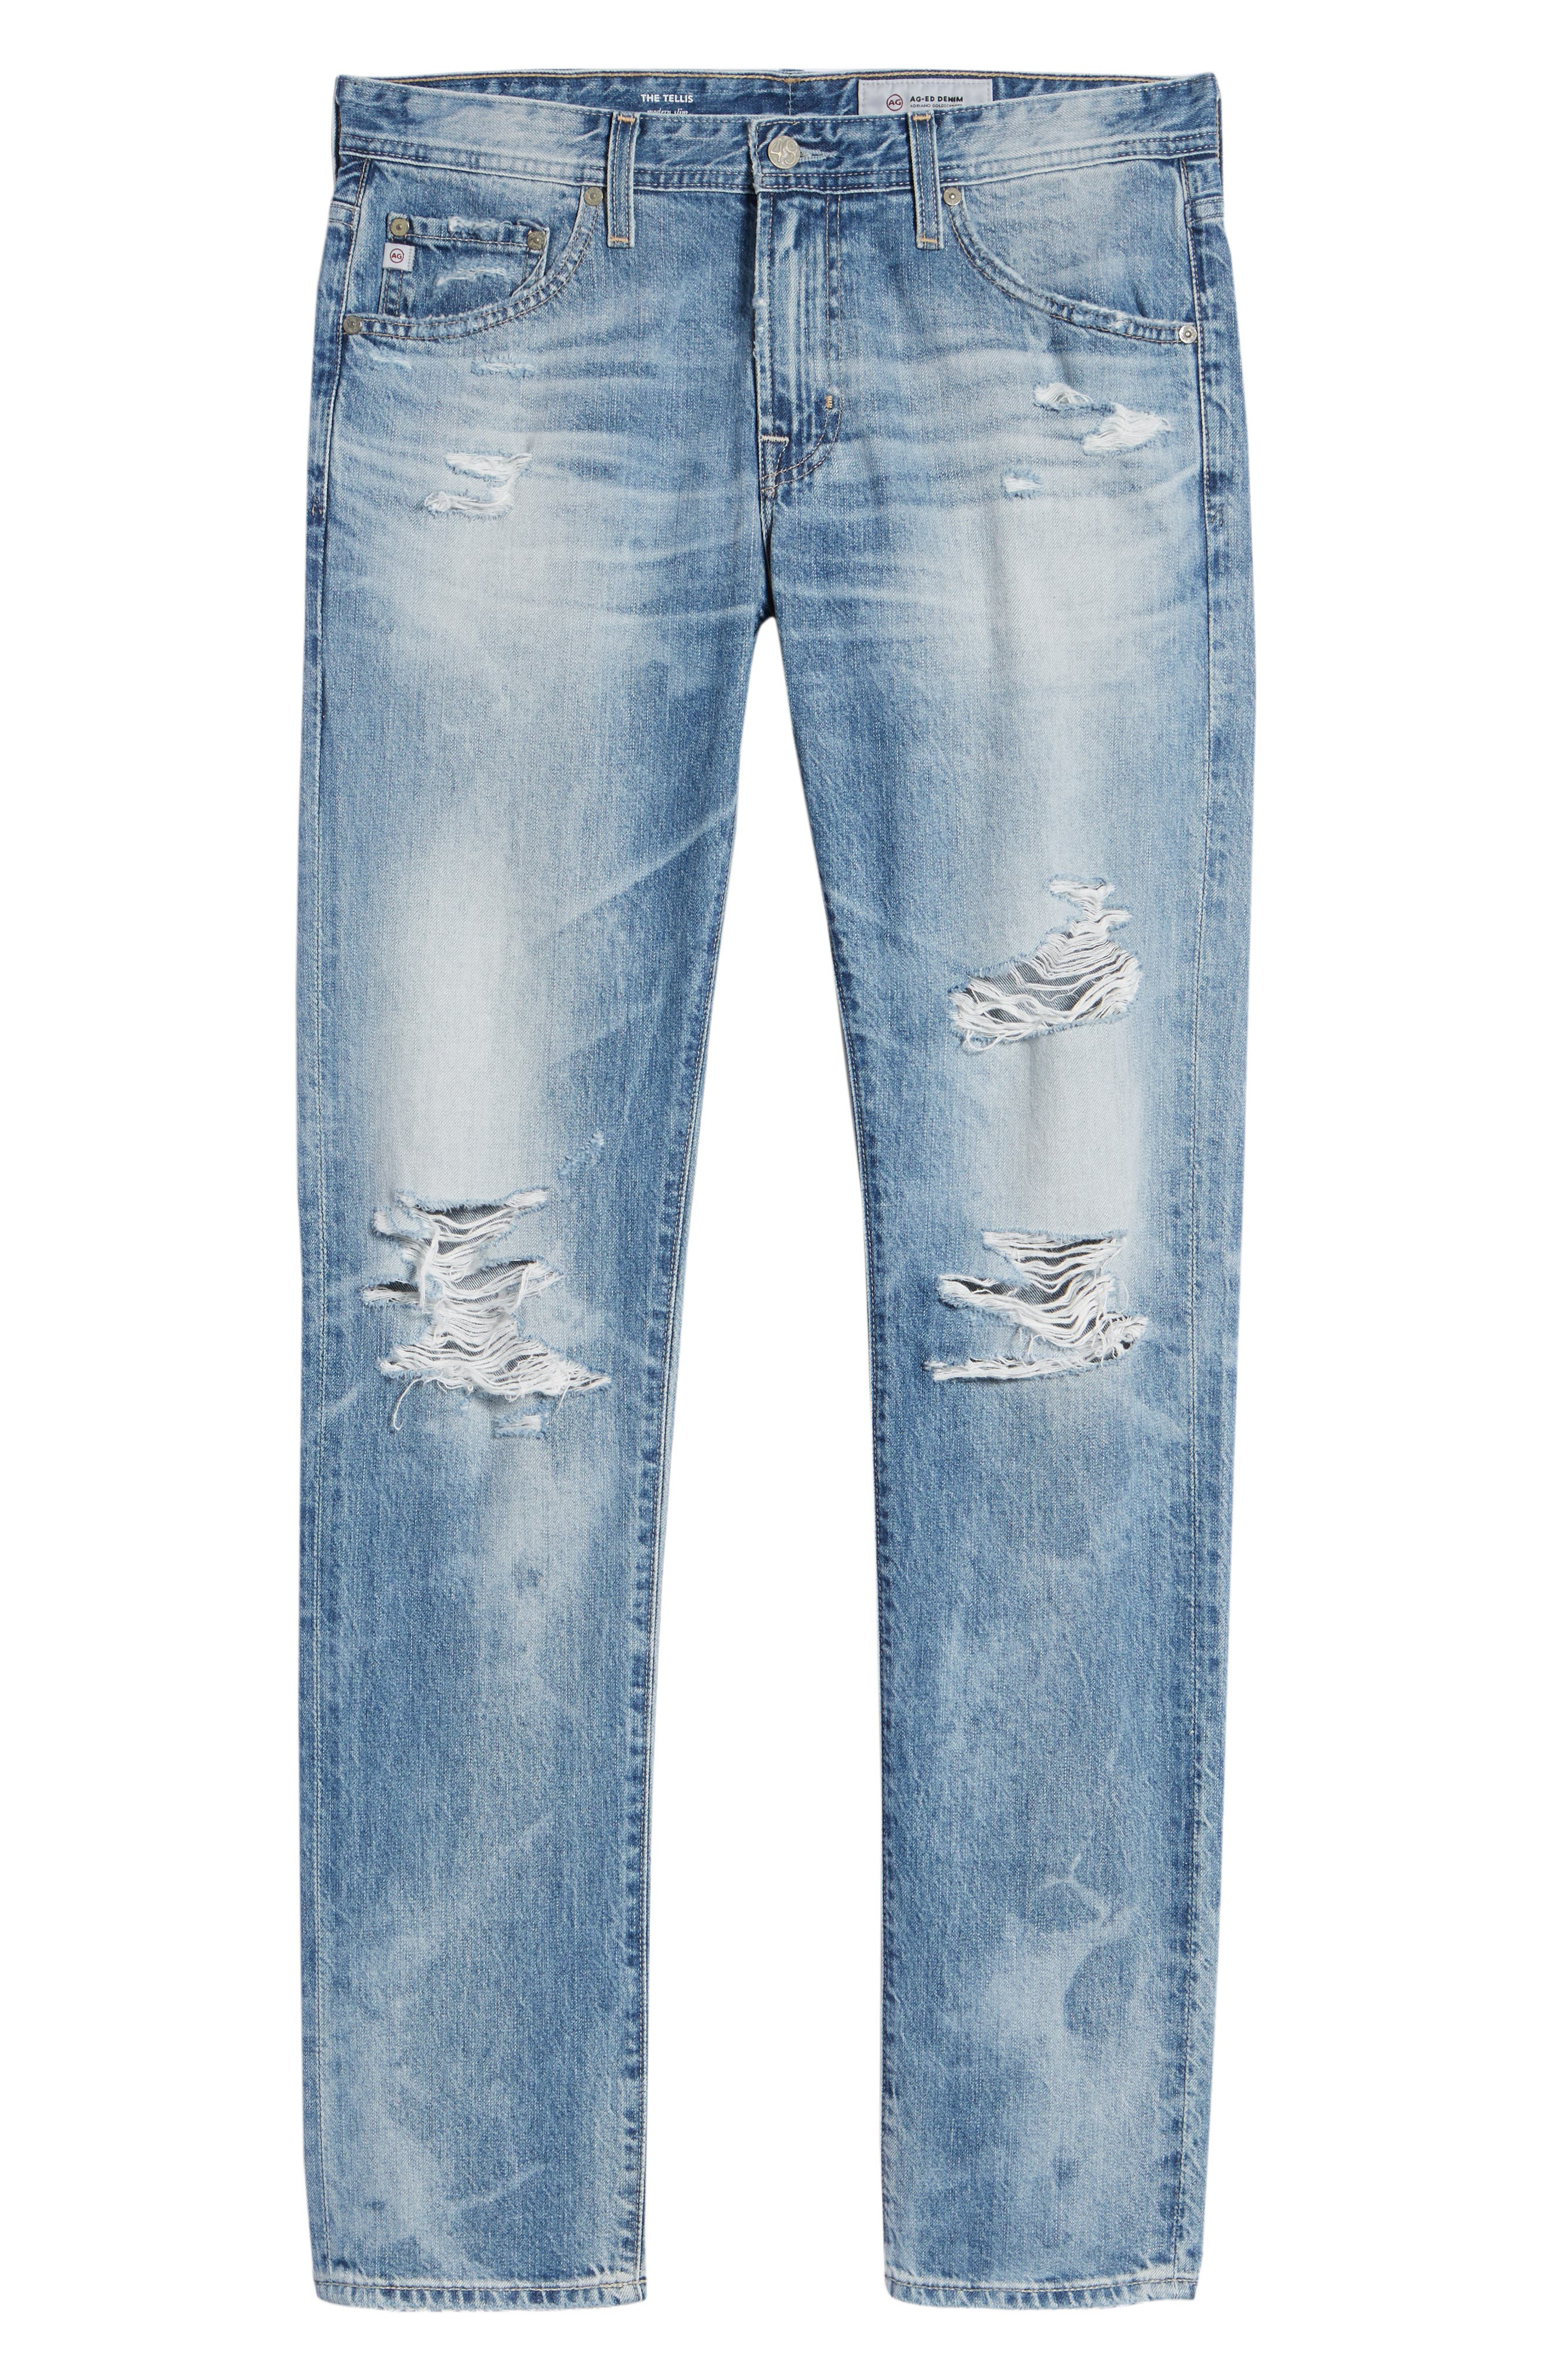 Tellis Slim Fit Jeans,                             Alternate thumbnail 6, color,                             23 Years Shearwater